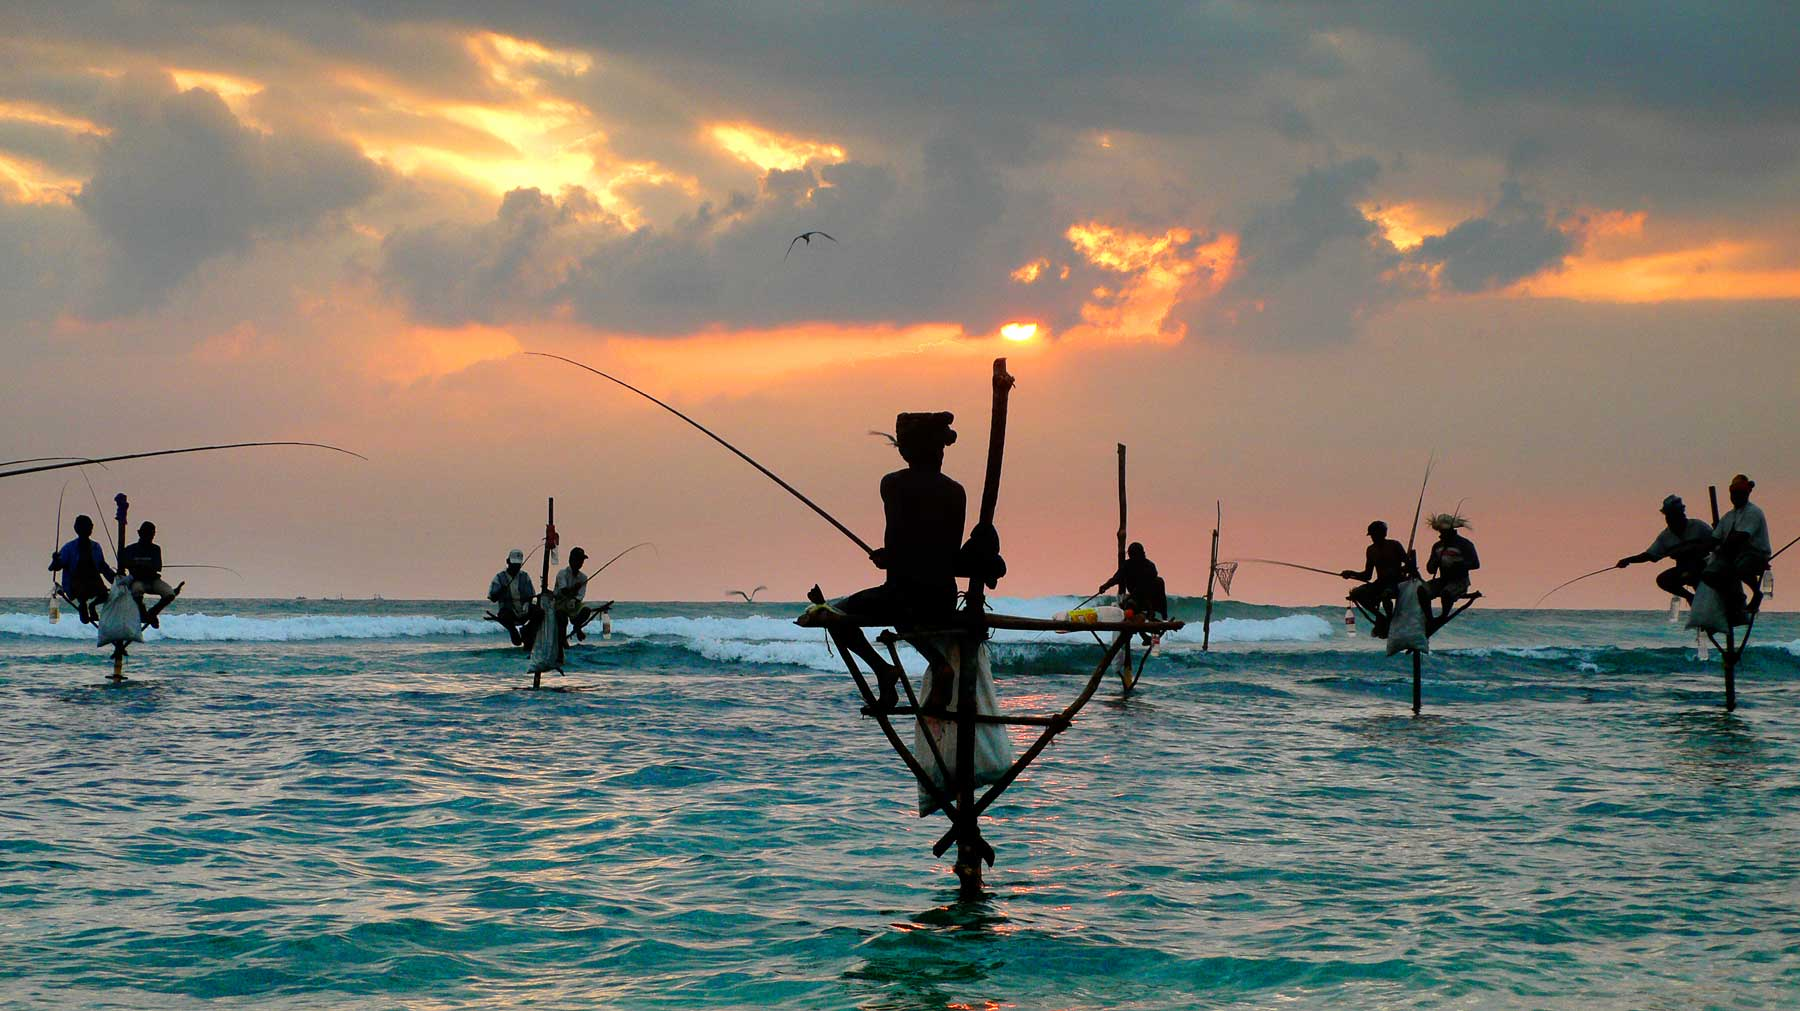 SRI-LANKA-FISHERMEN-BIG.jpg